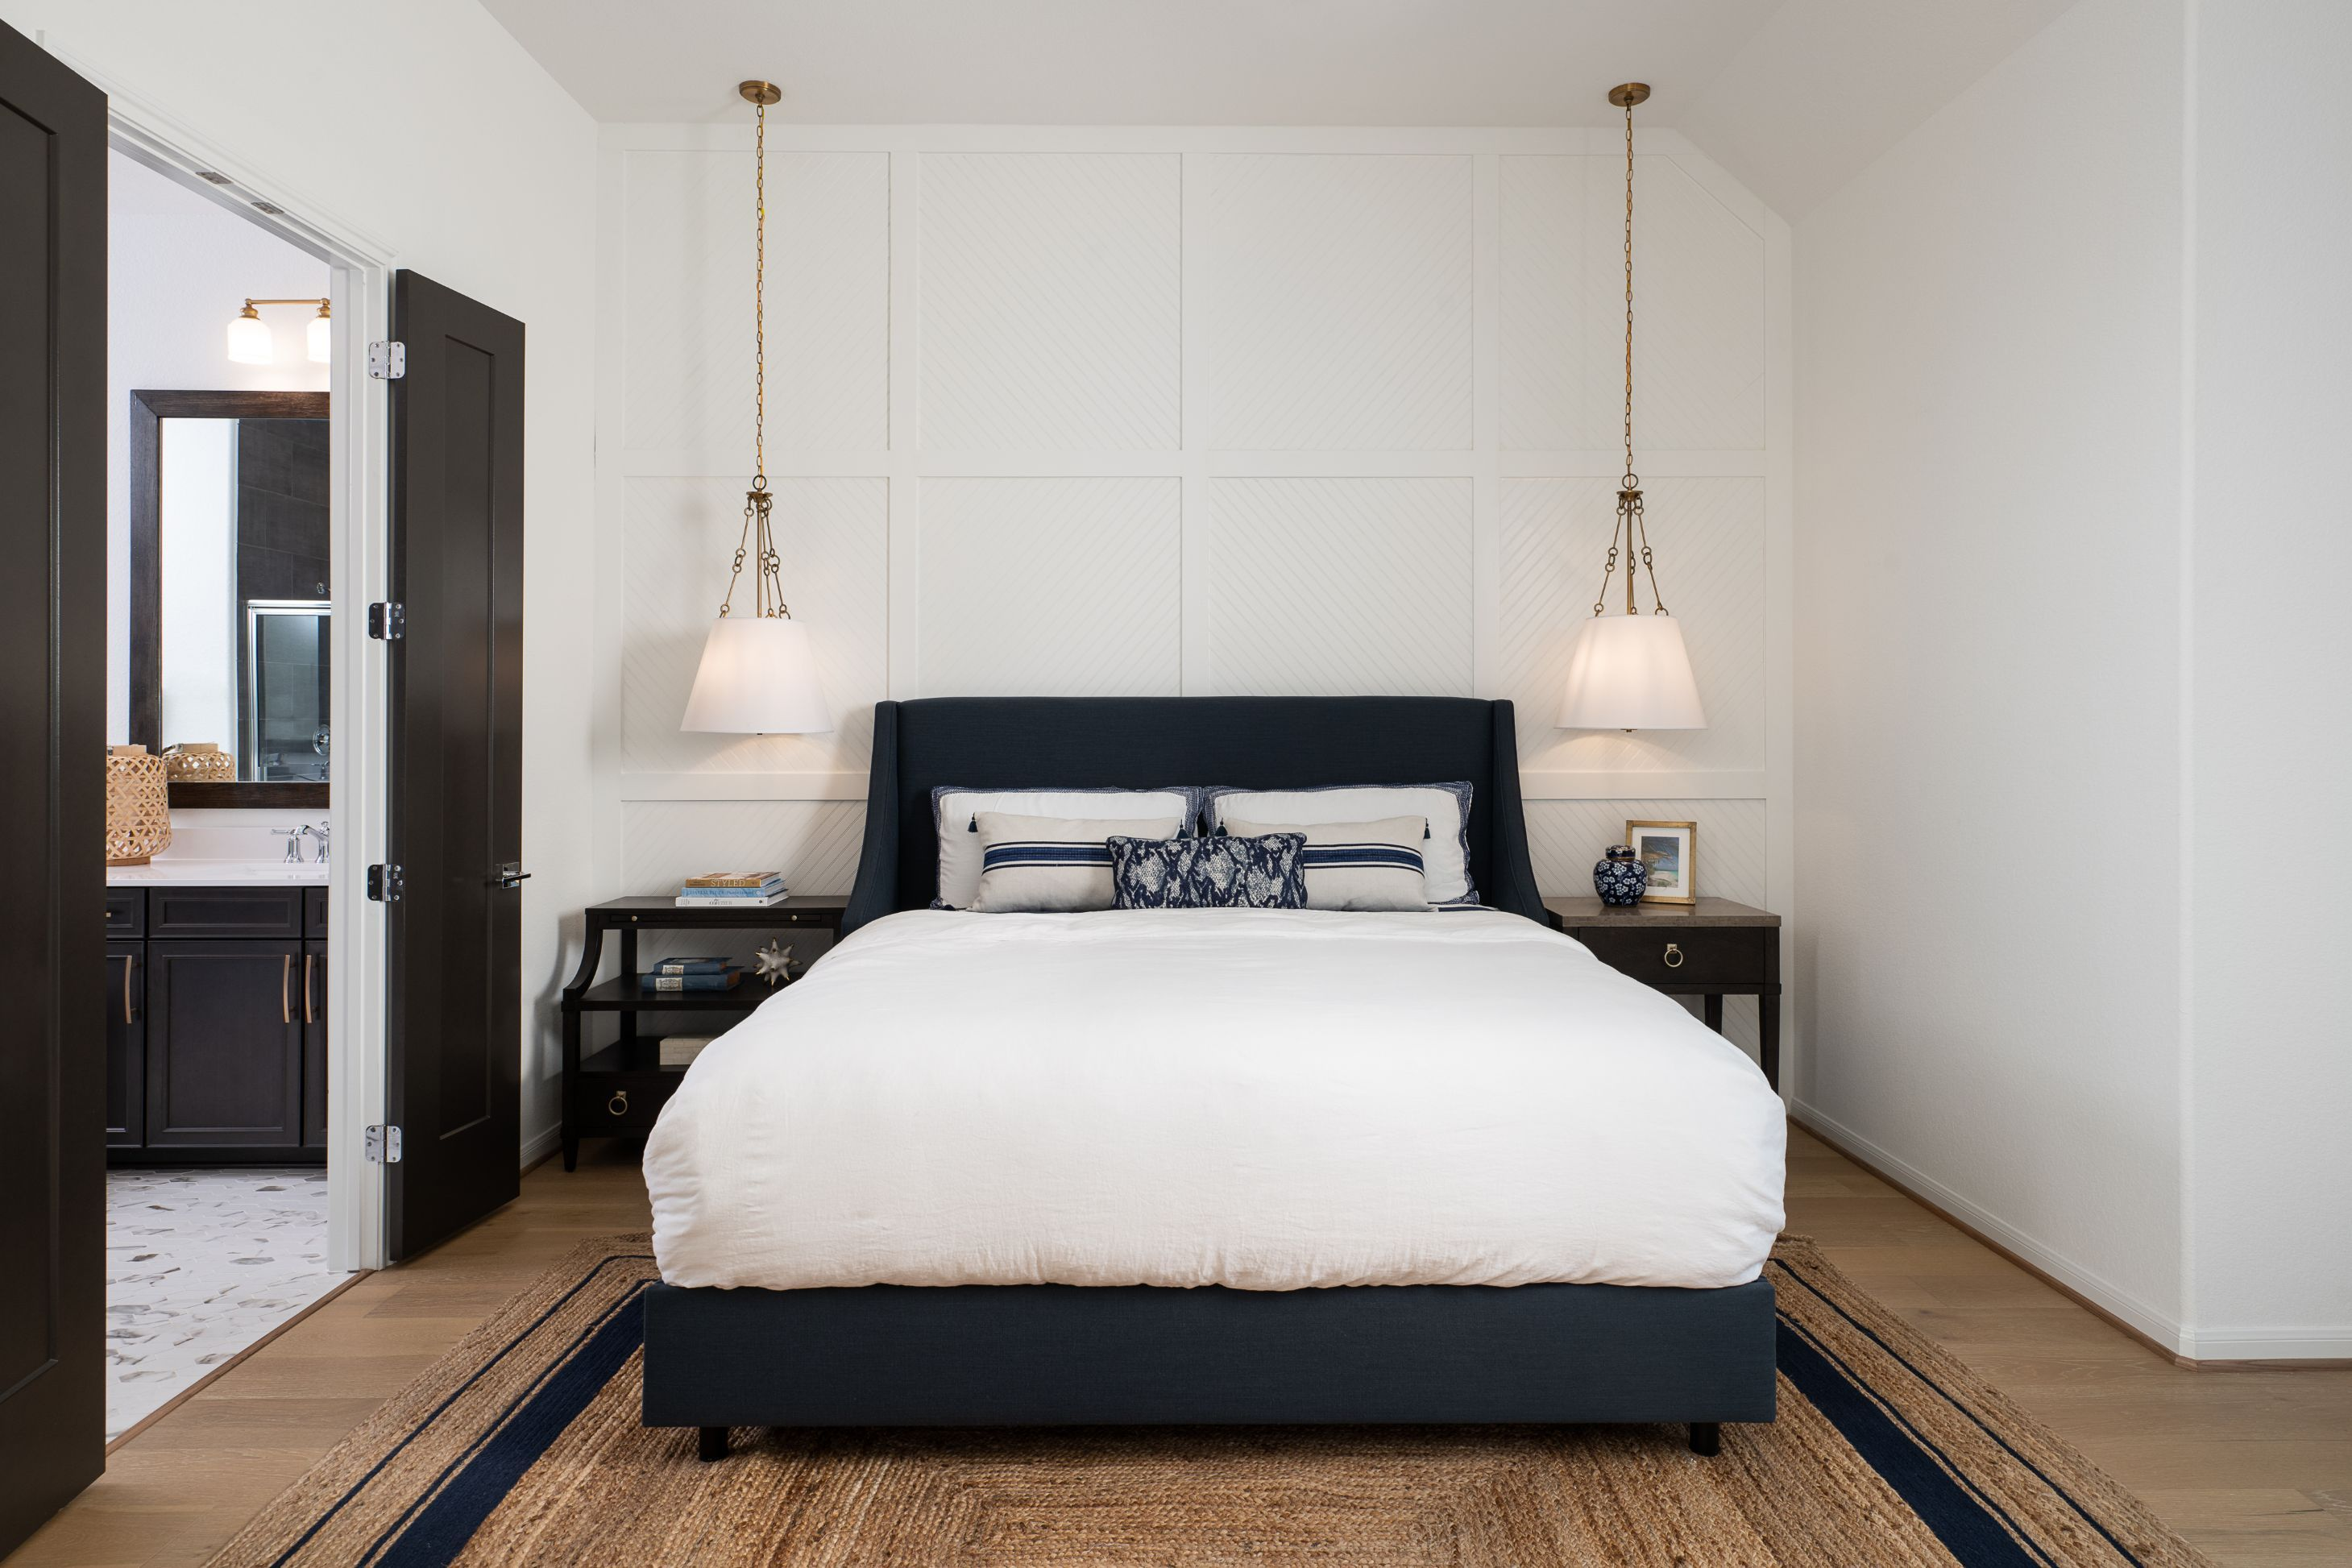 Bedroom featured in the Bethany By Ashton Woods in Houston, TX